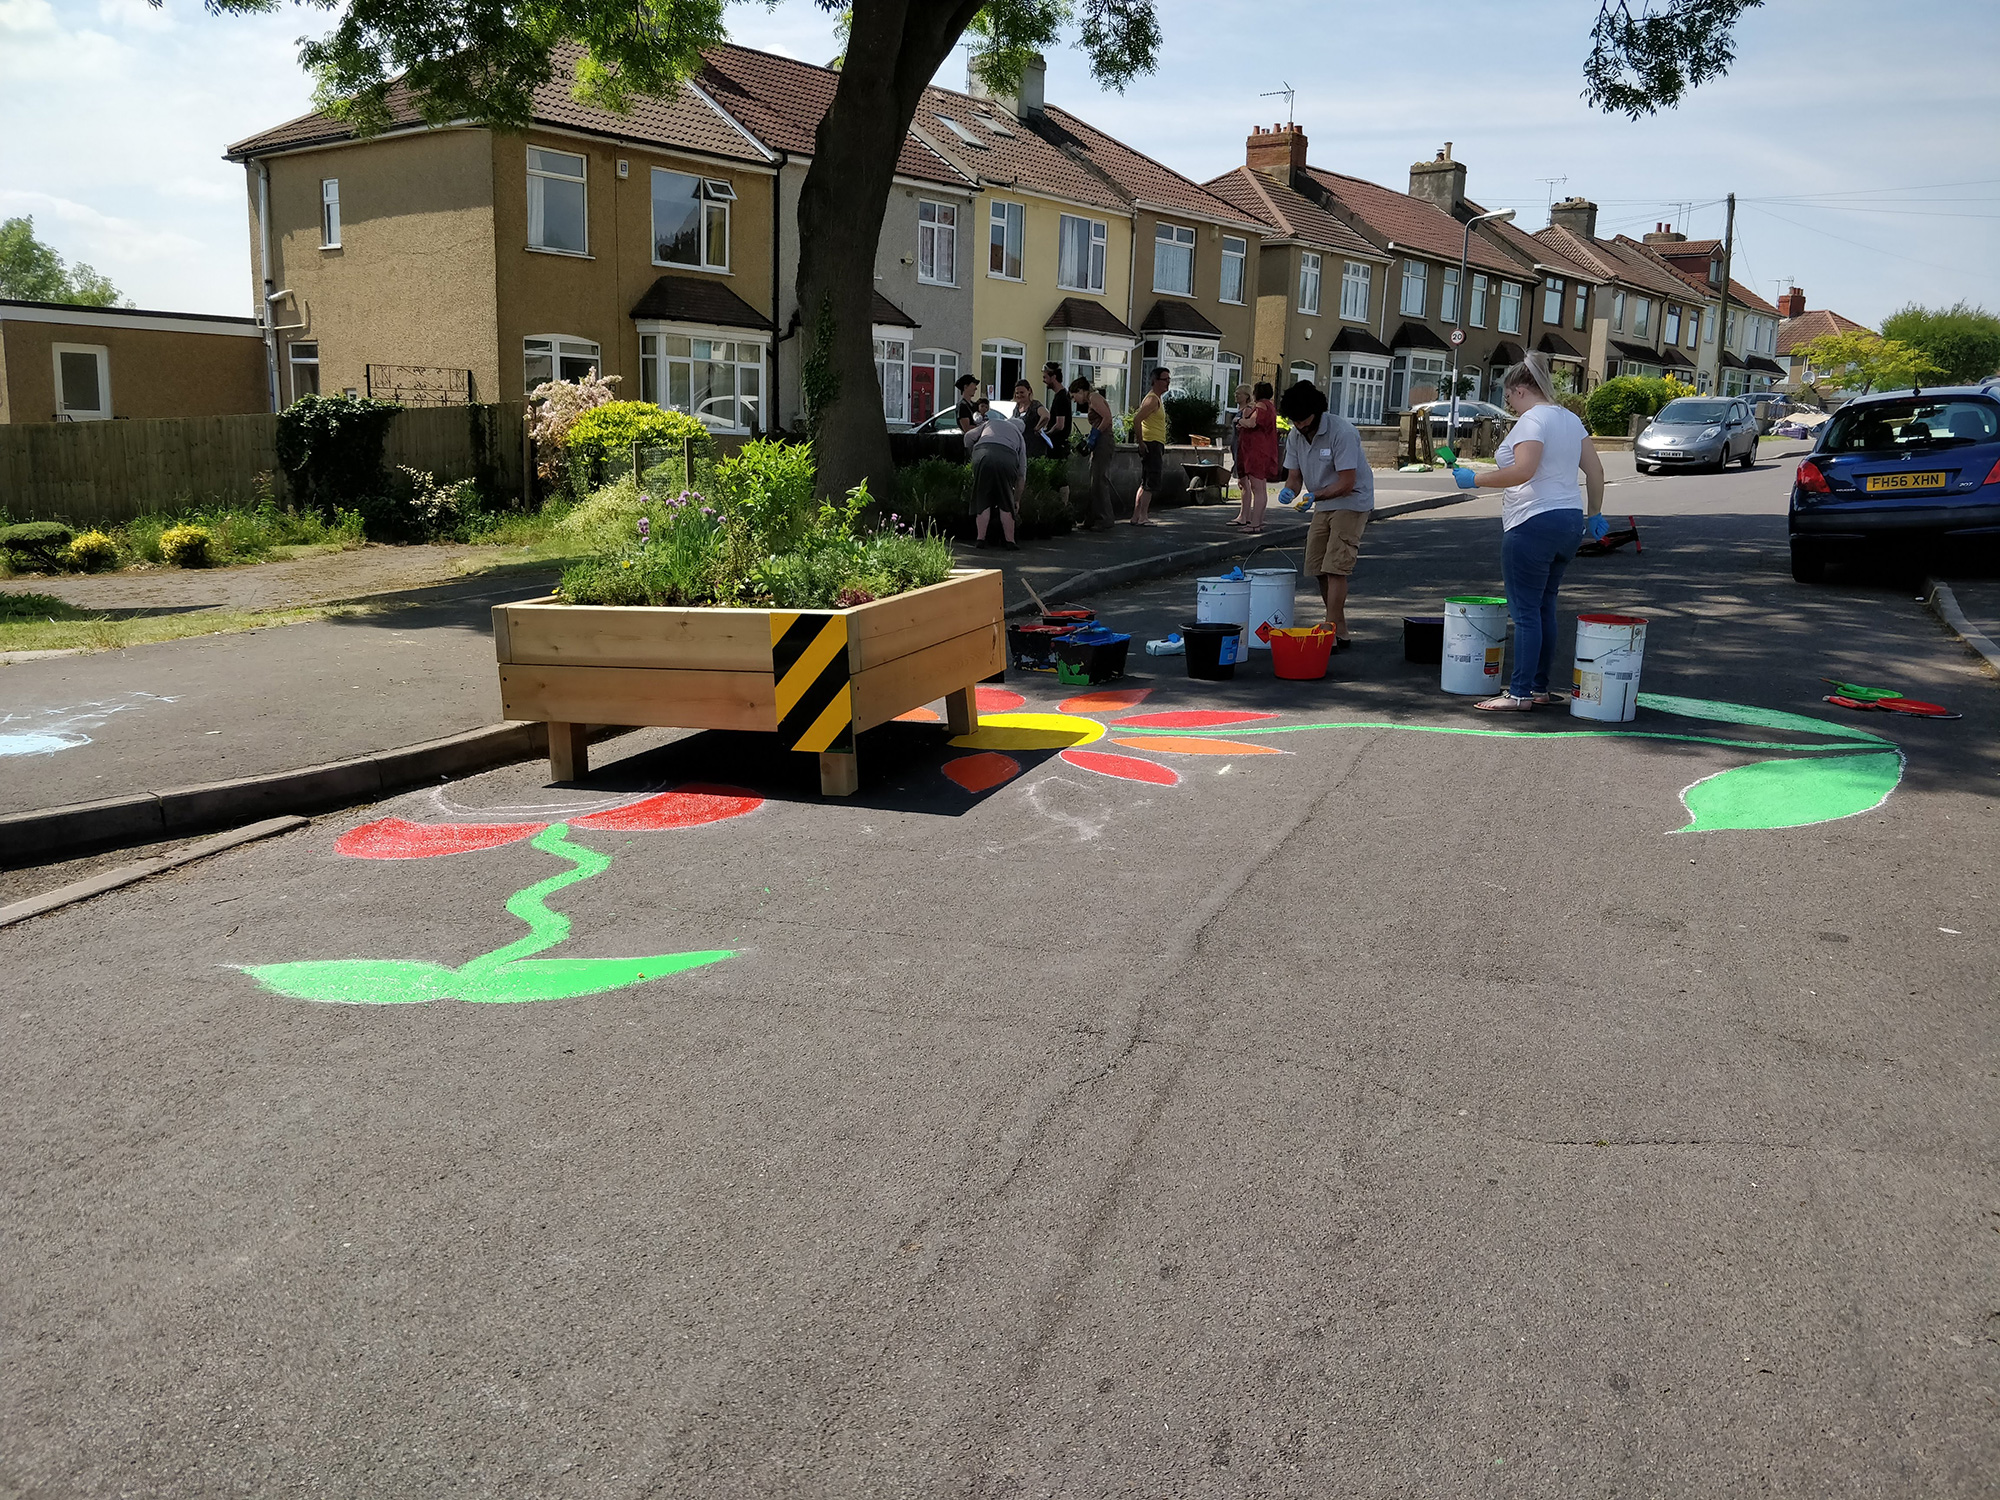 Painted coloured road markers highlighting the raised flower bed speed reducers